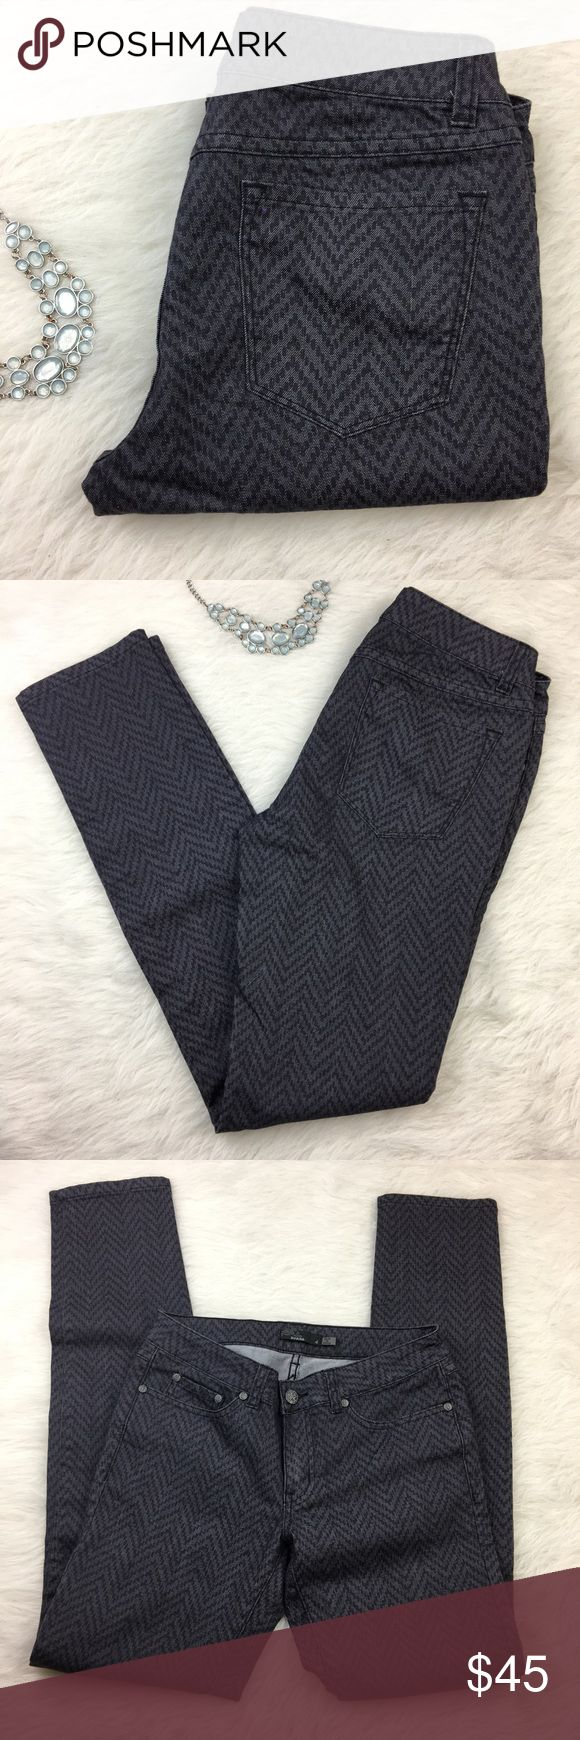 Prana dark navy blue chevron skinny pants Size 4. Amazing condition. Flattering skinny pants. Prana dark navy blue chevron skinny pants. Prana Pants Skinny